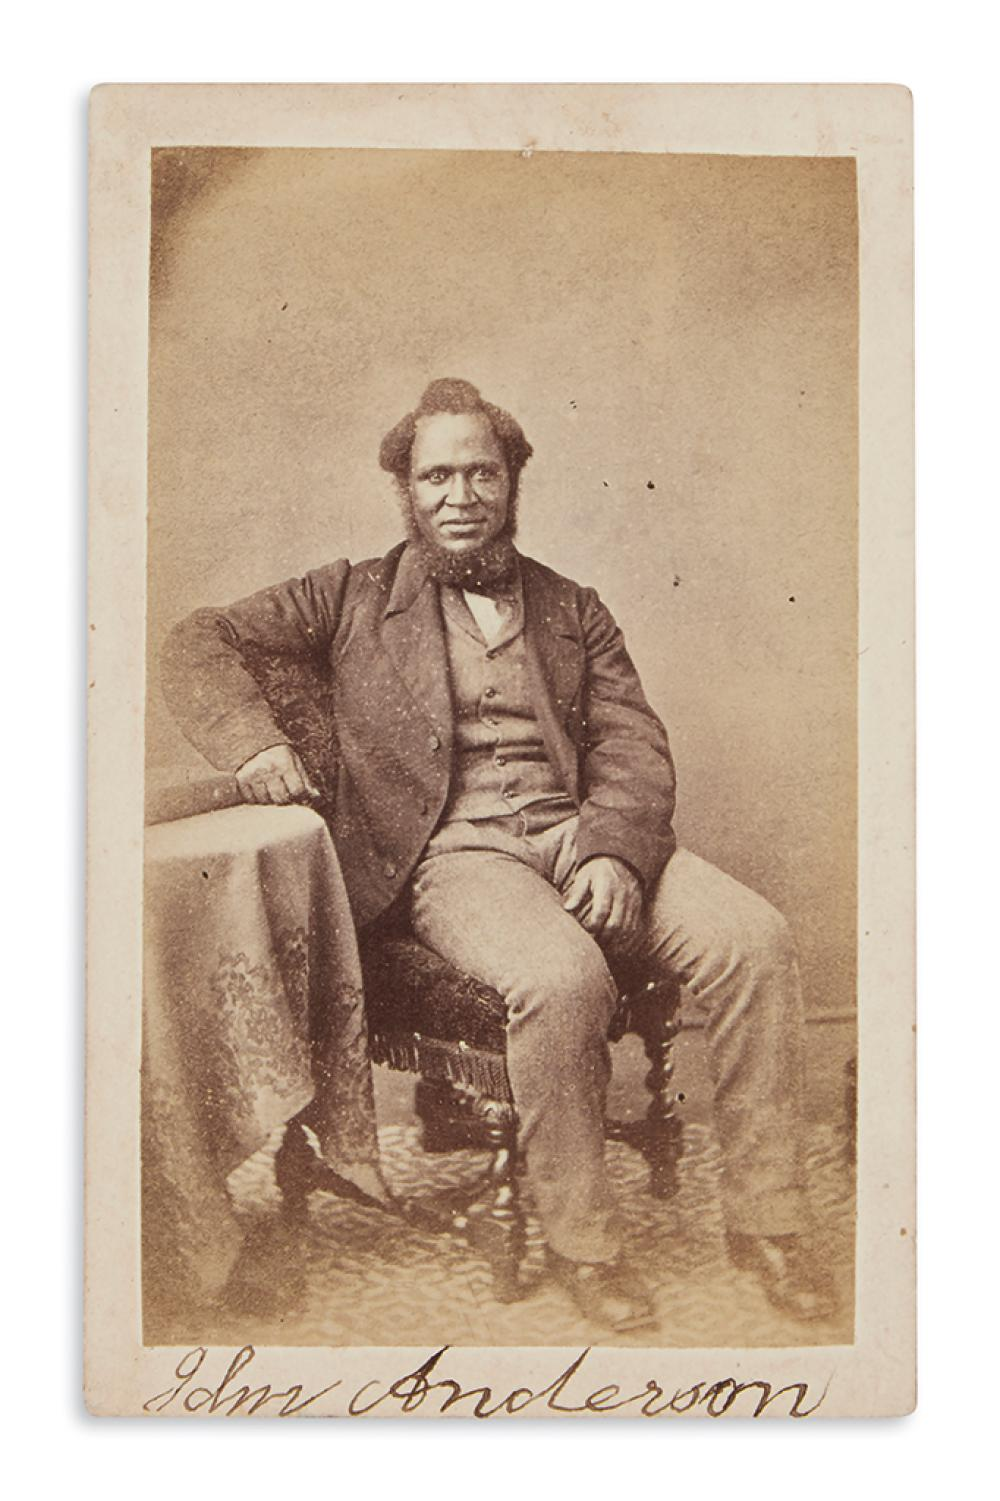 (SLAVERY AND ABOLITION.) Signed carte-de-visite portrait of escaped slave and accused murderer John Anderson.